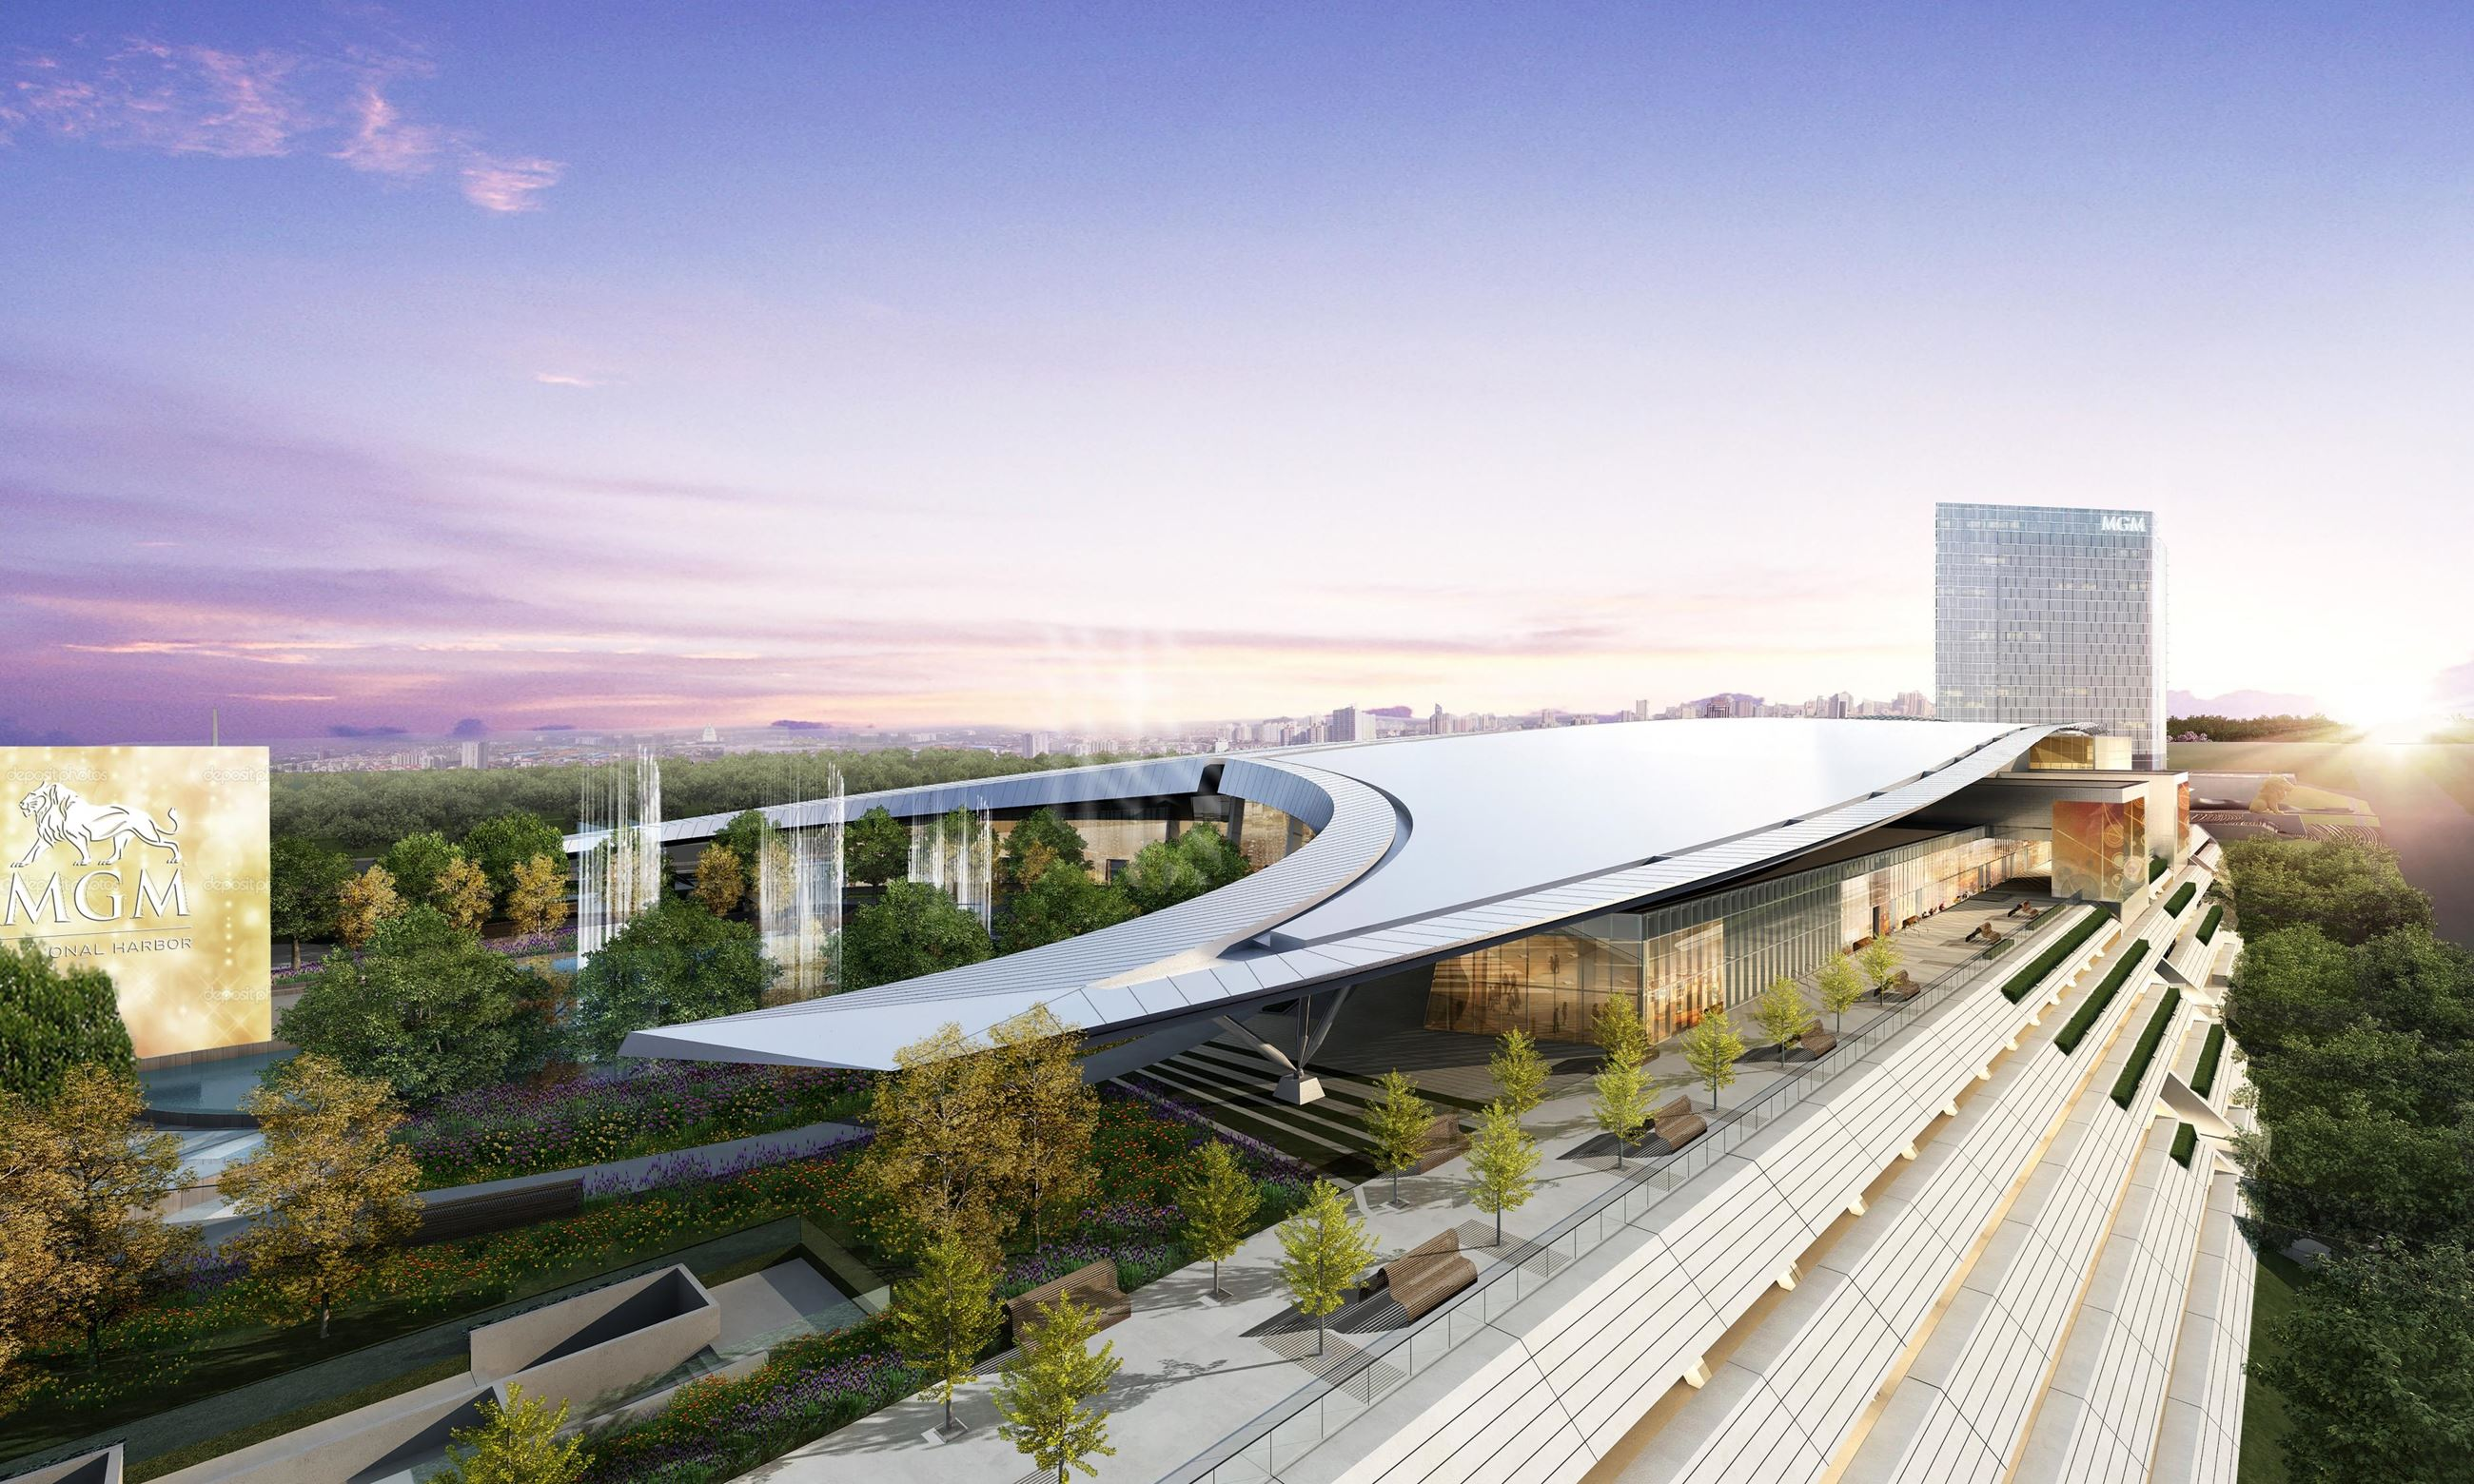 Image of MGM National Harbor Rendering